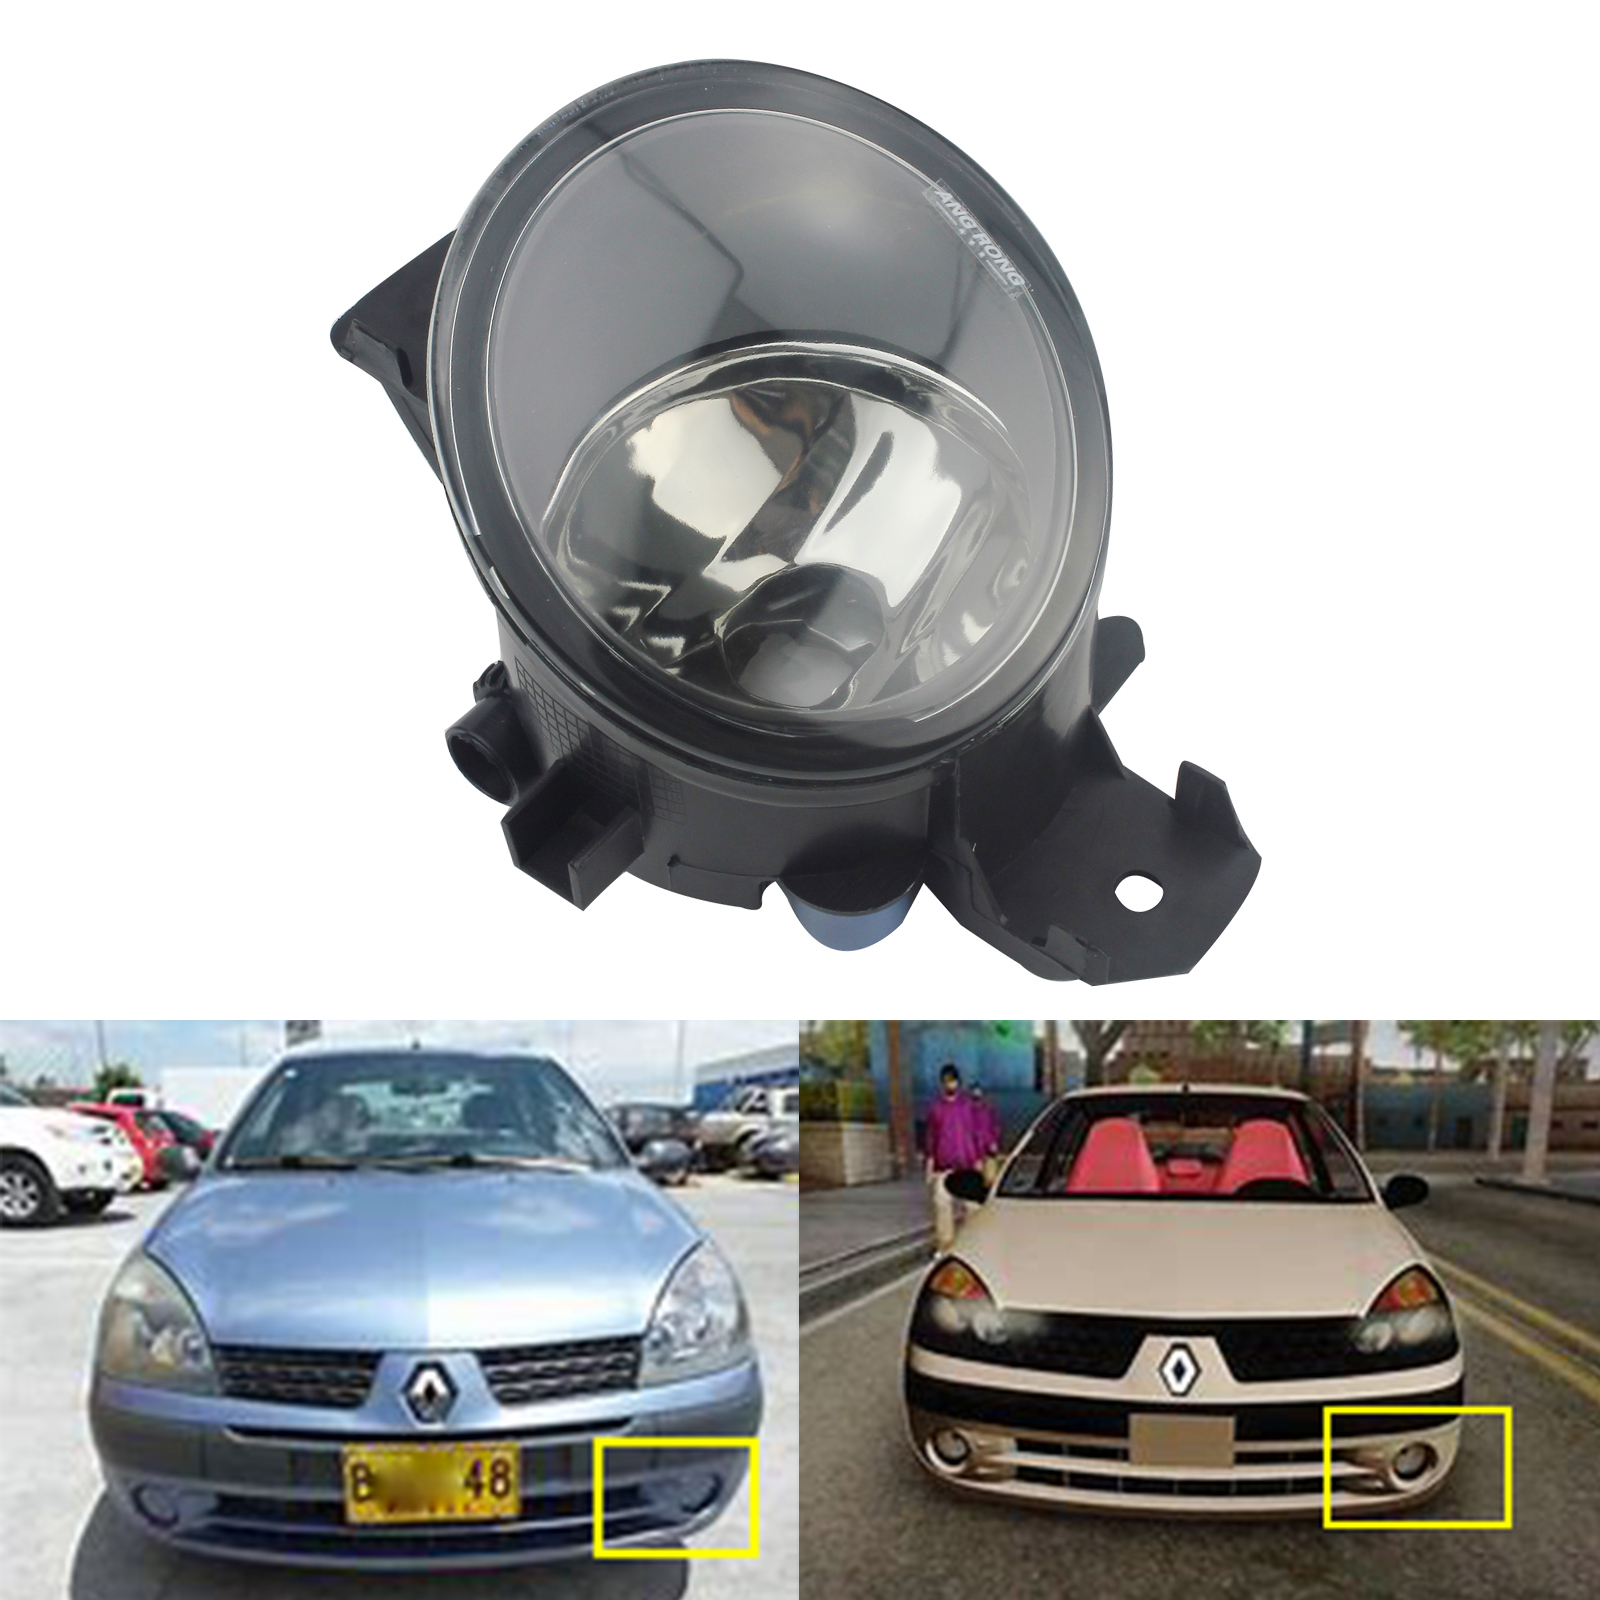 ANGRONG Front Fog Light N/S Left Passenger Near Side Without Bulb For Renault Clio 2001-2013